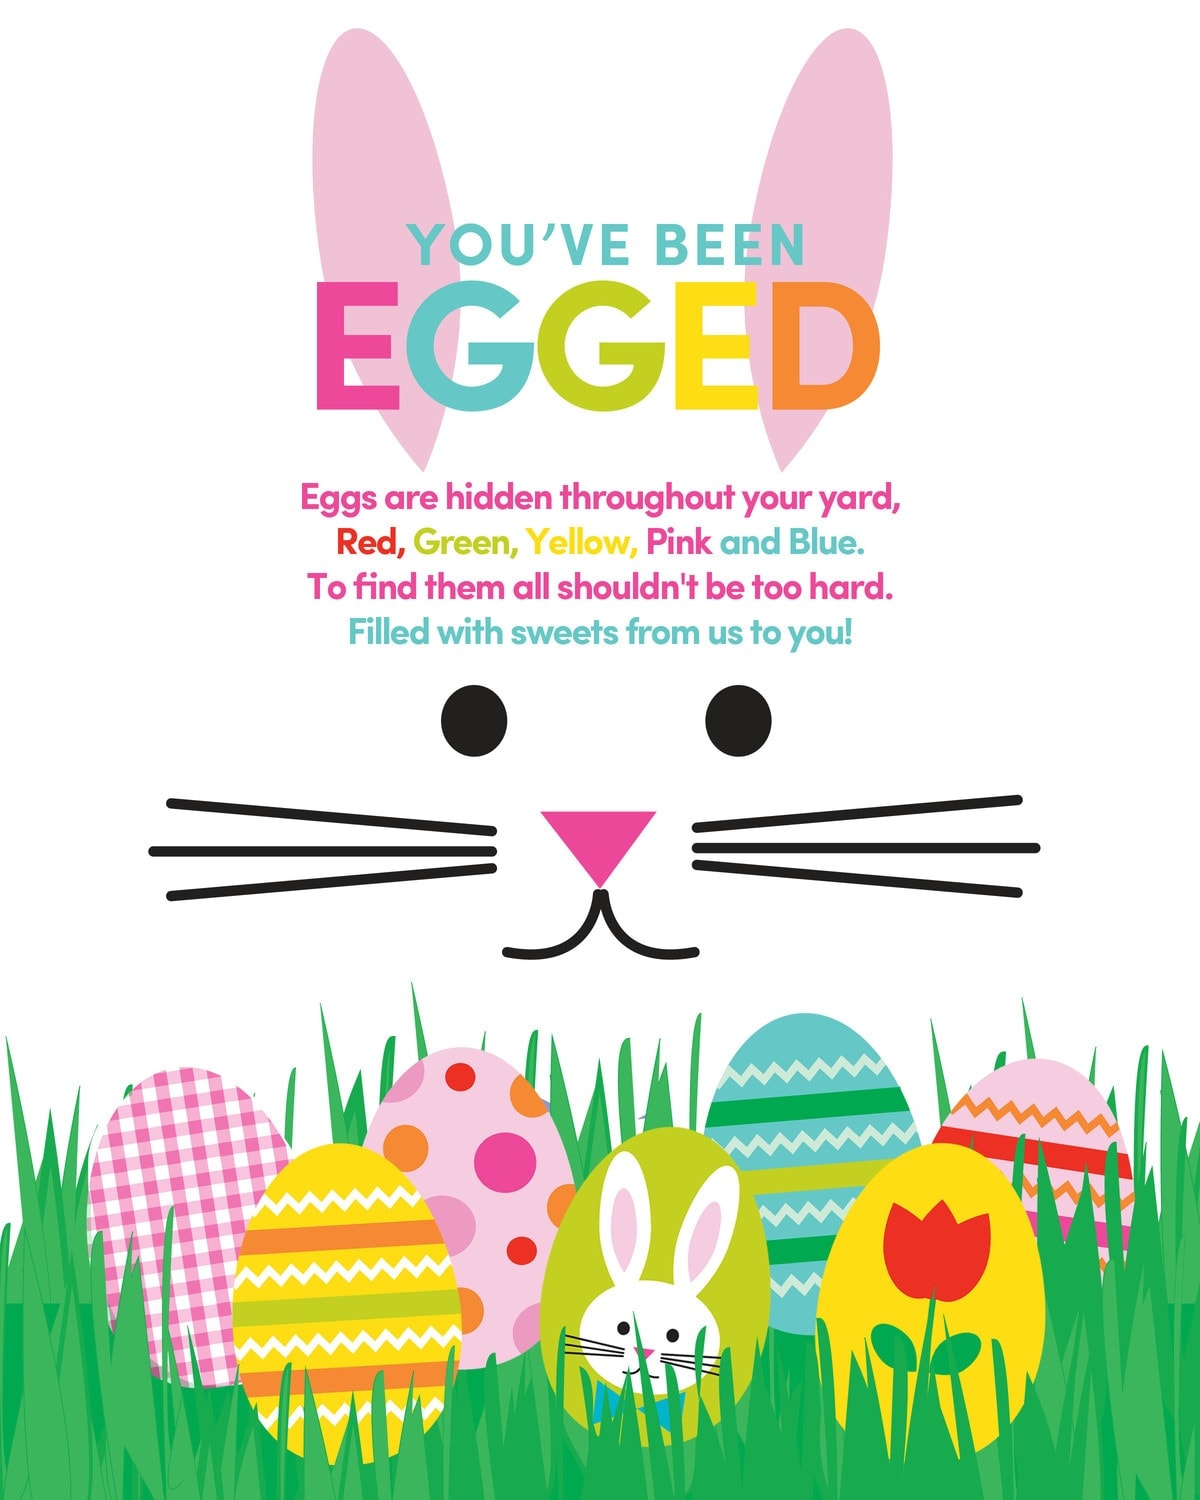 image about You've Been Egged Printable named Youve Been Egged Printable - Lil Luna